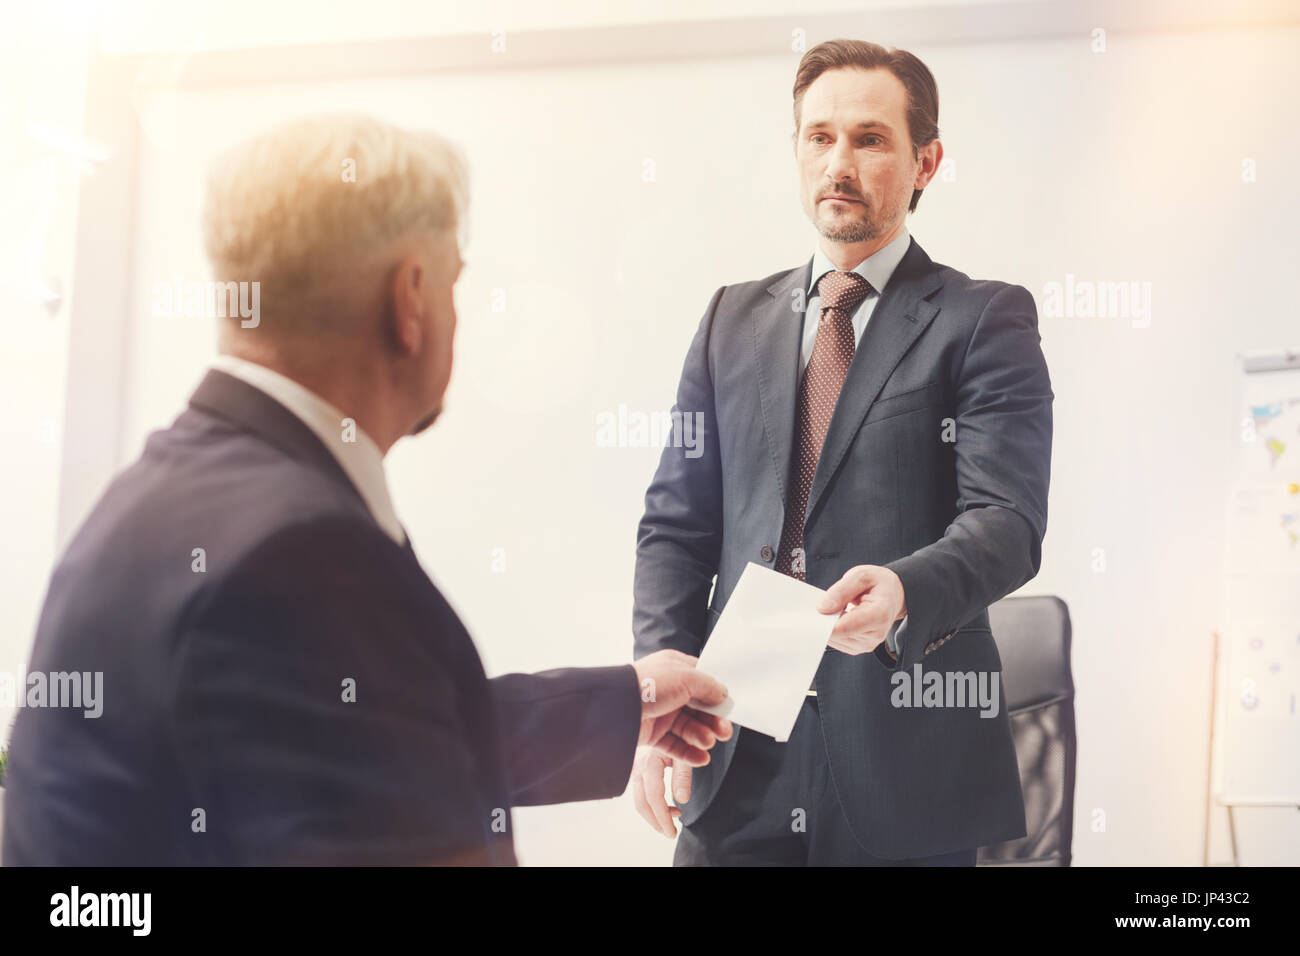 Determined ambitious man submitting his letter of resignation - Stock Image